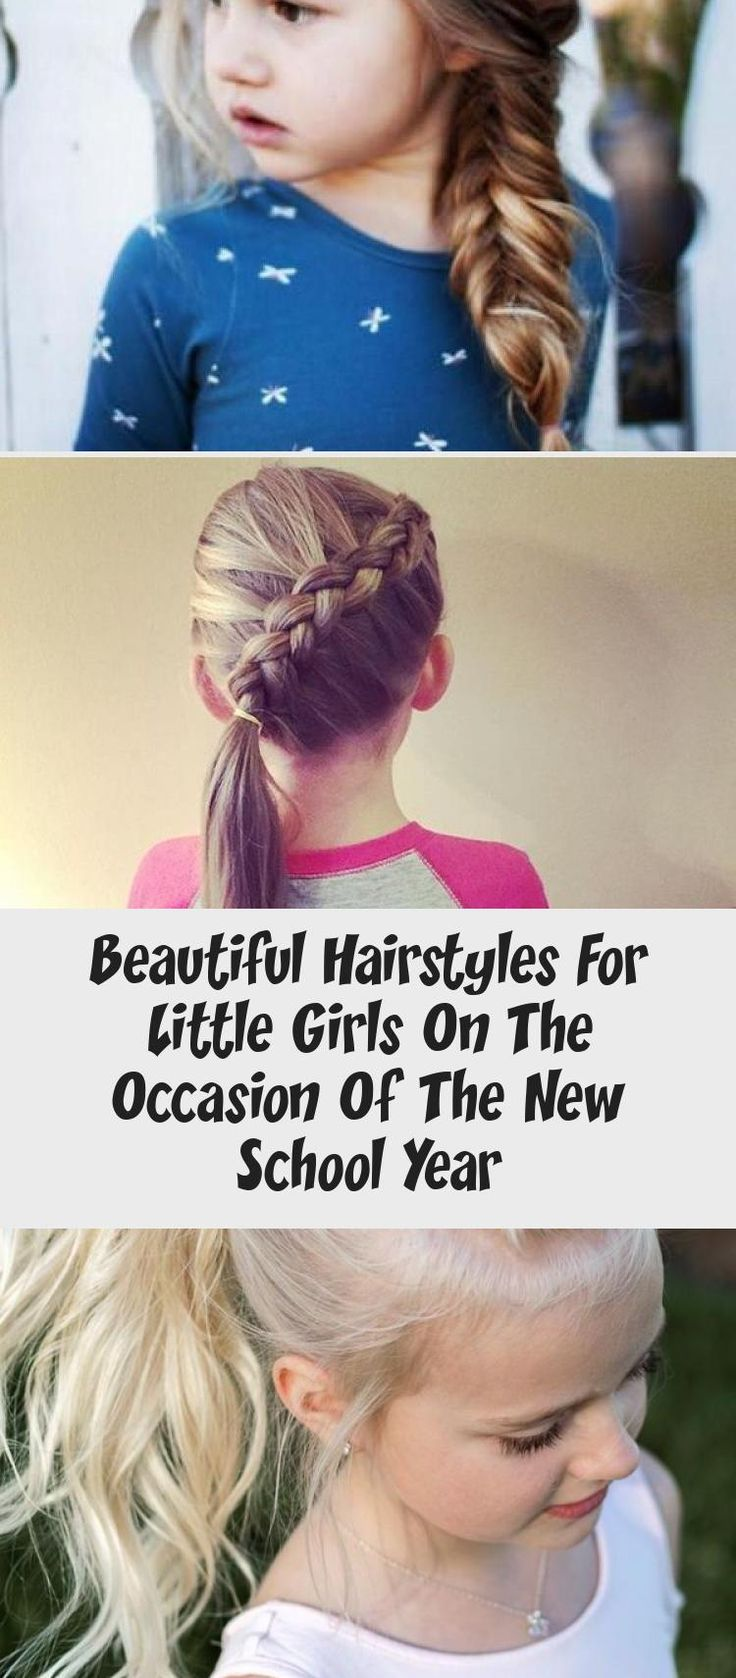 beautiful hairstyles for little girls on the occasion of the new school year Hairdressing #babyhairstylesBiracial #babyhairstylesKorean #babyhairstylesGirl #babyhairstylesGel #babyhairstylesWithBows